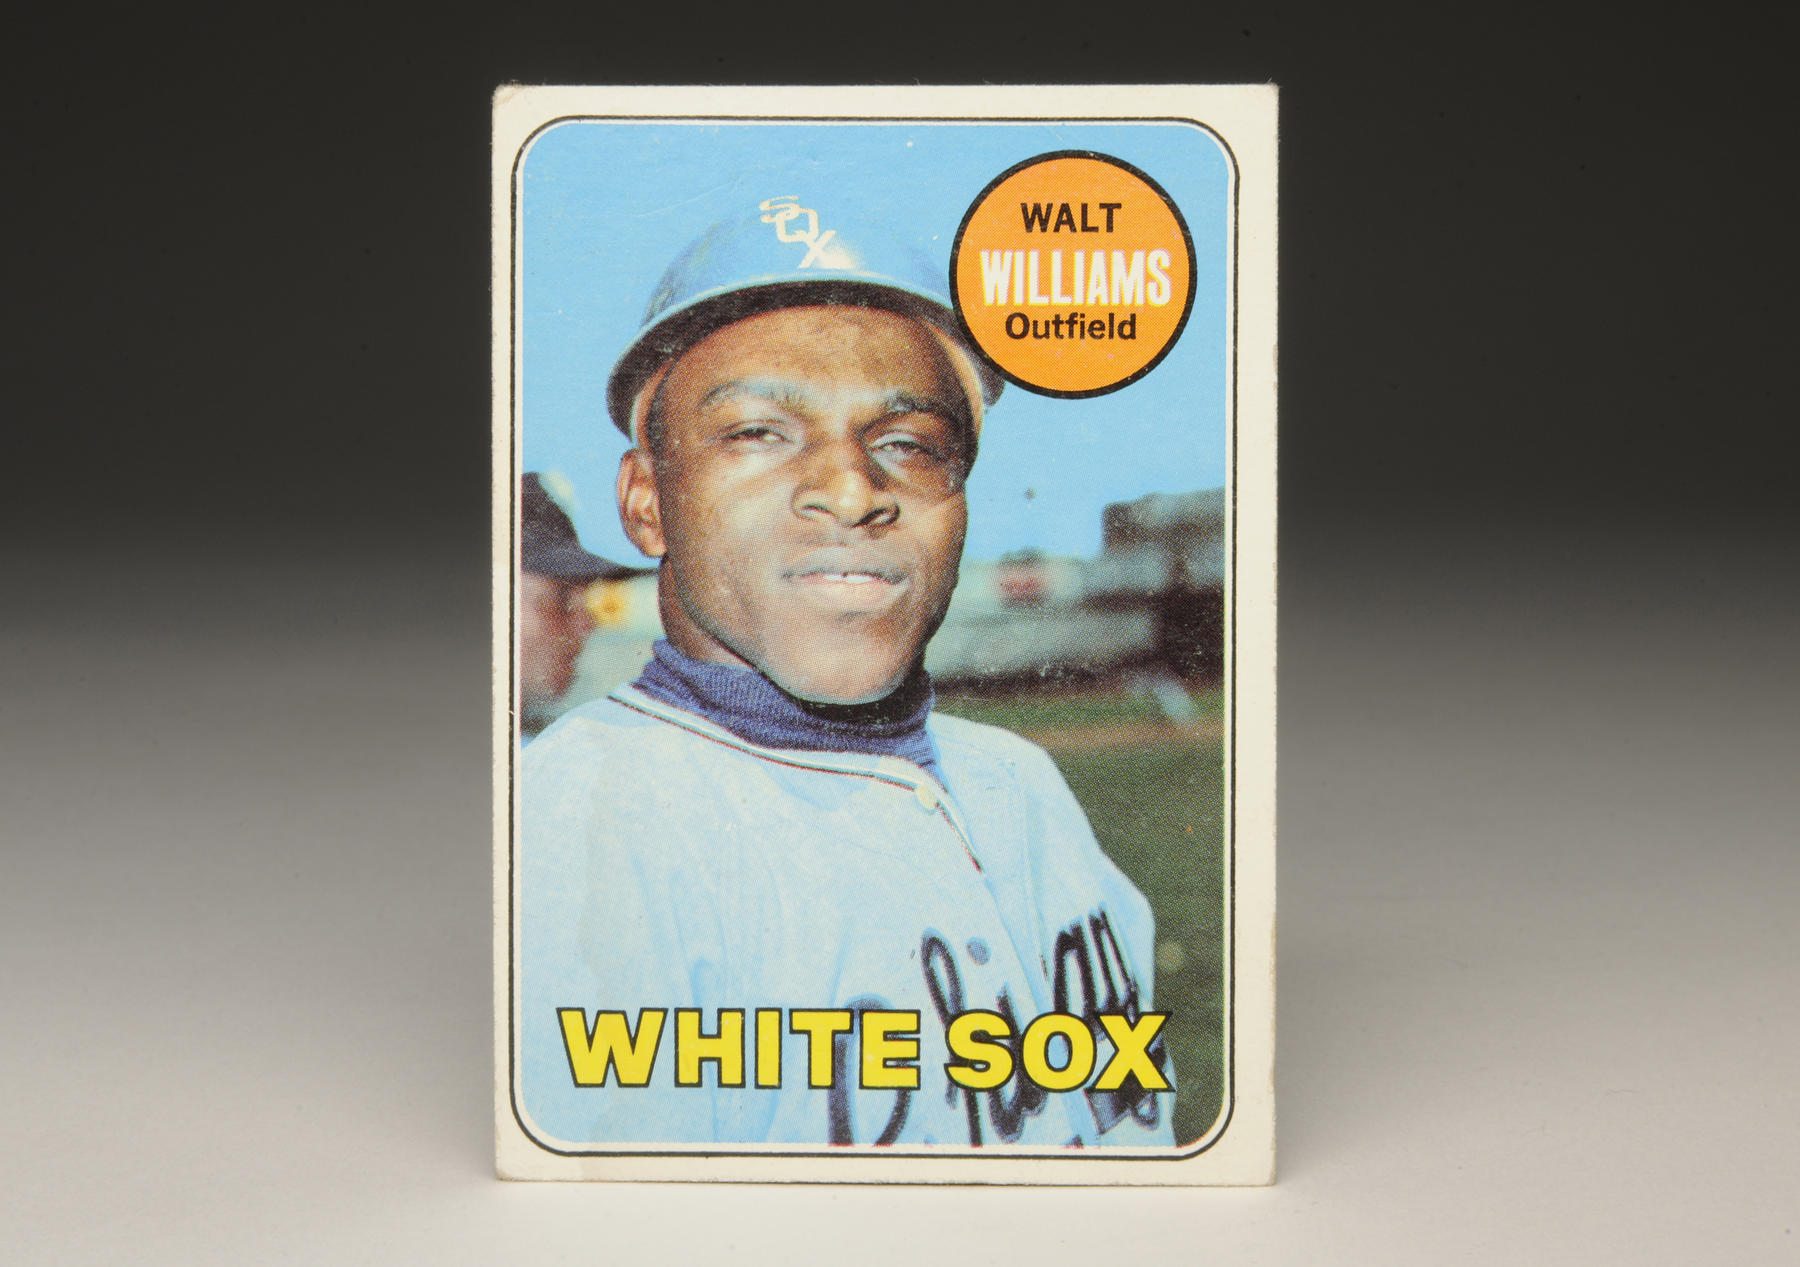 1969 Walt Williams Topps card.(Milo Stewart, Jr. / National Baseball Hall of Fame)